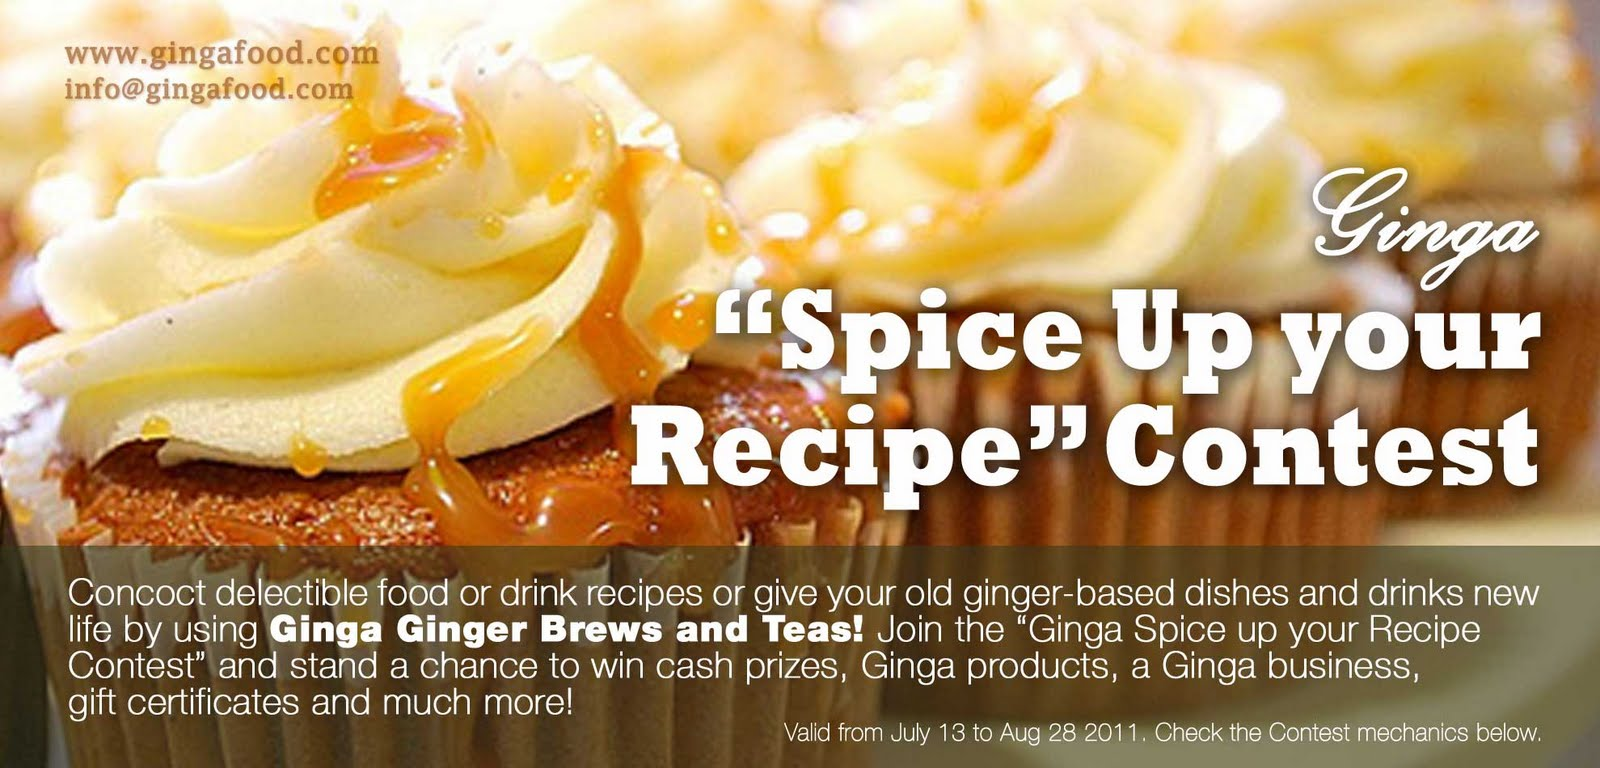 Ginga launches the ginga spice up your recipe facebook contest forumfinder Choice Image